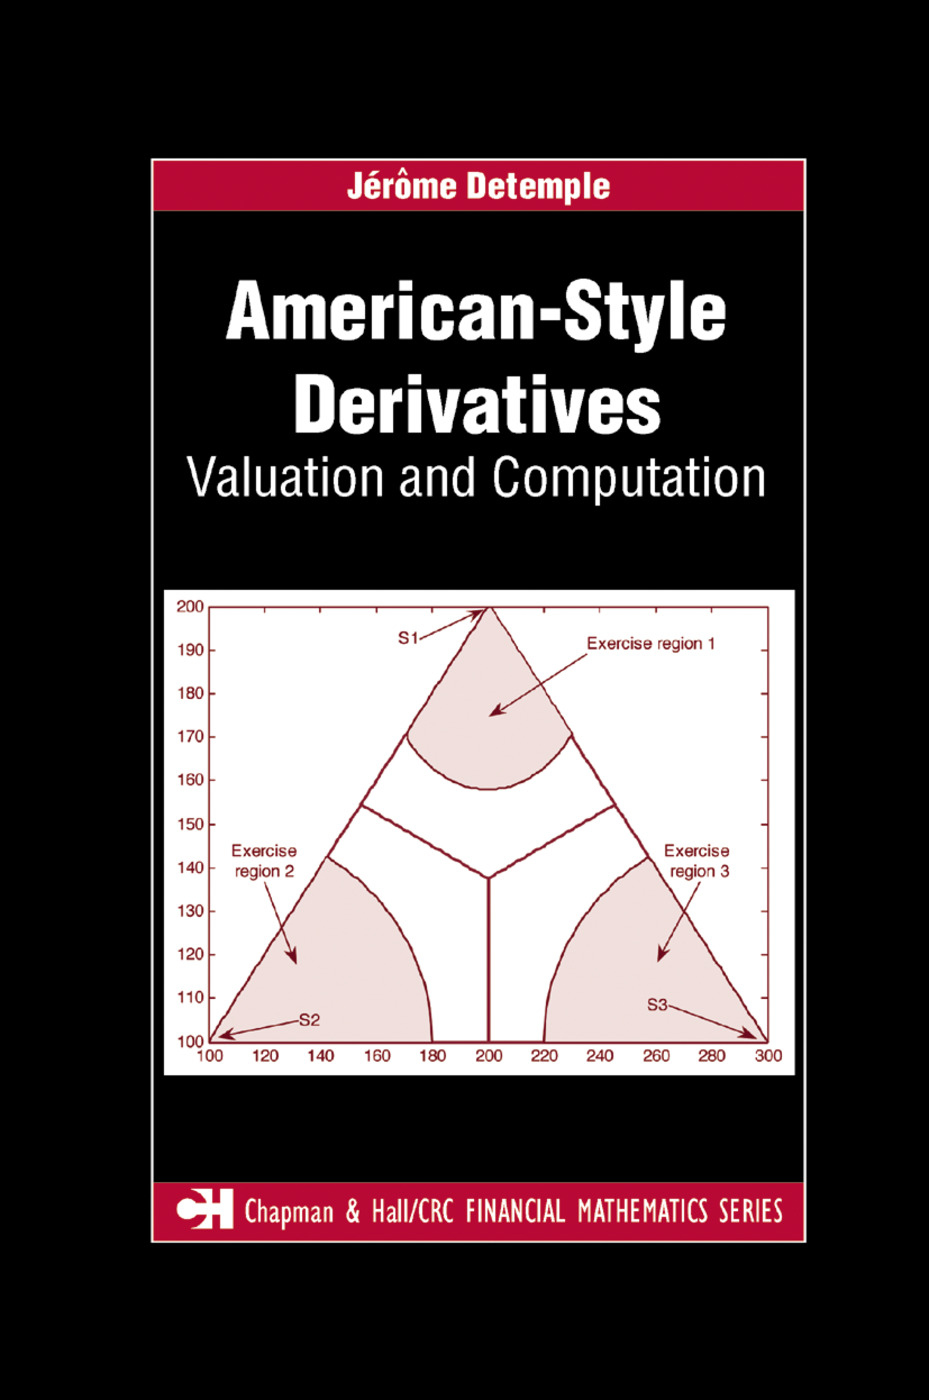 American-Style Derivatives: Valuation and Computation book cover